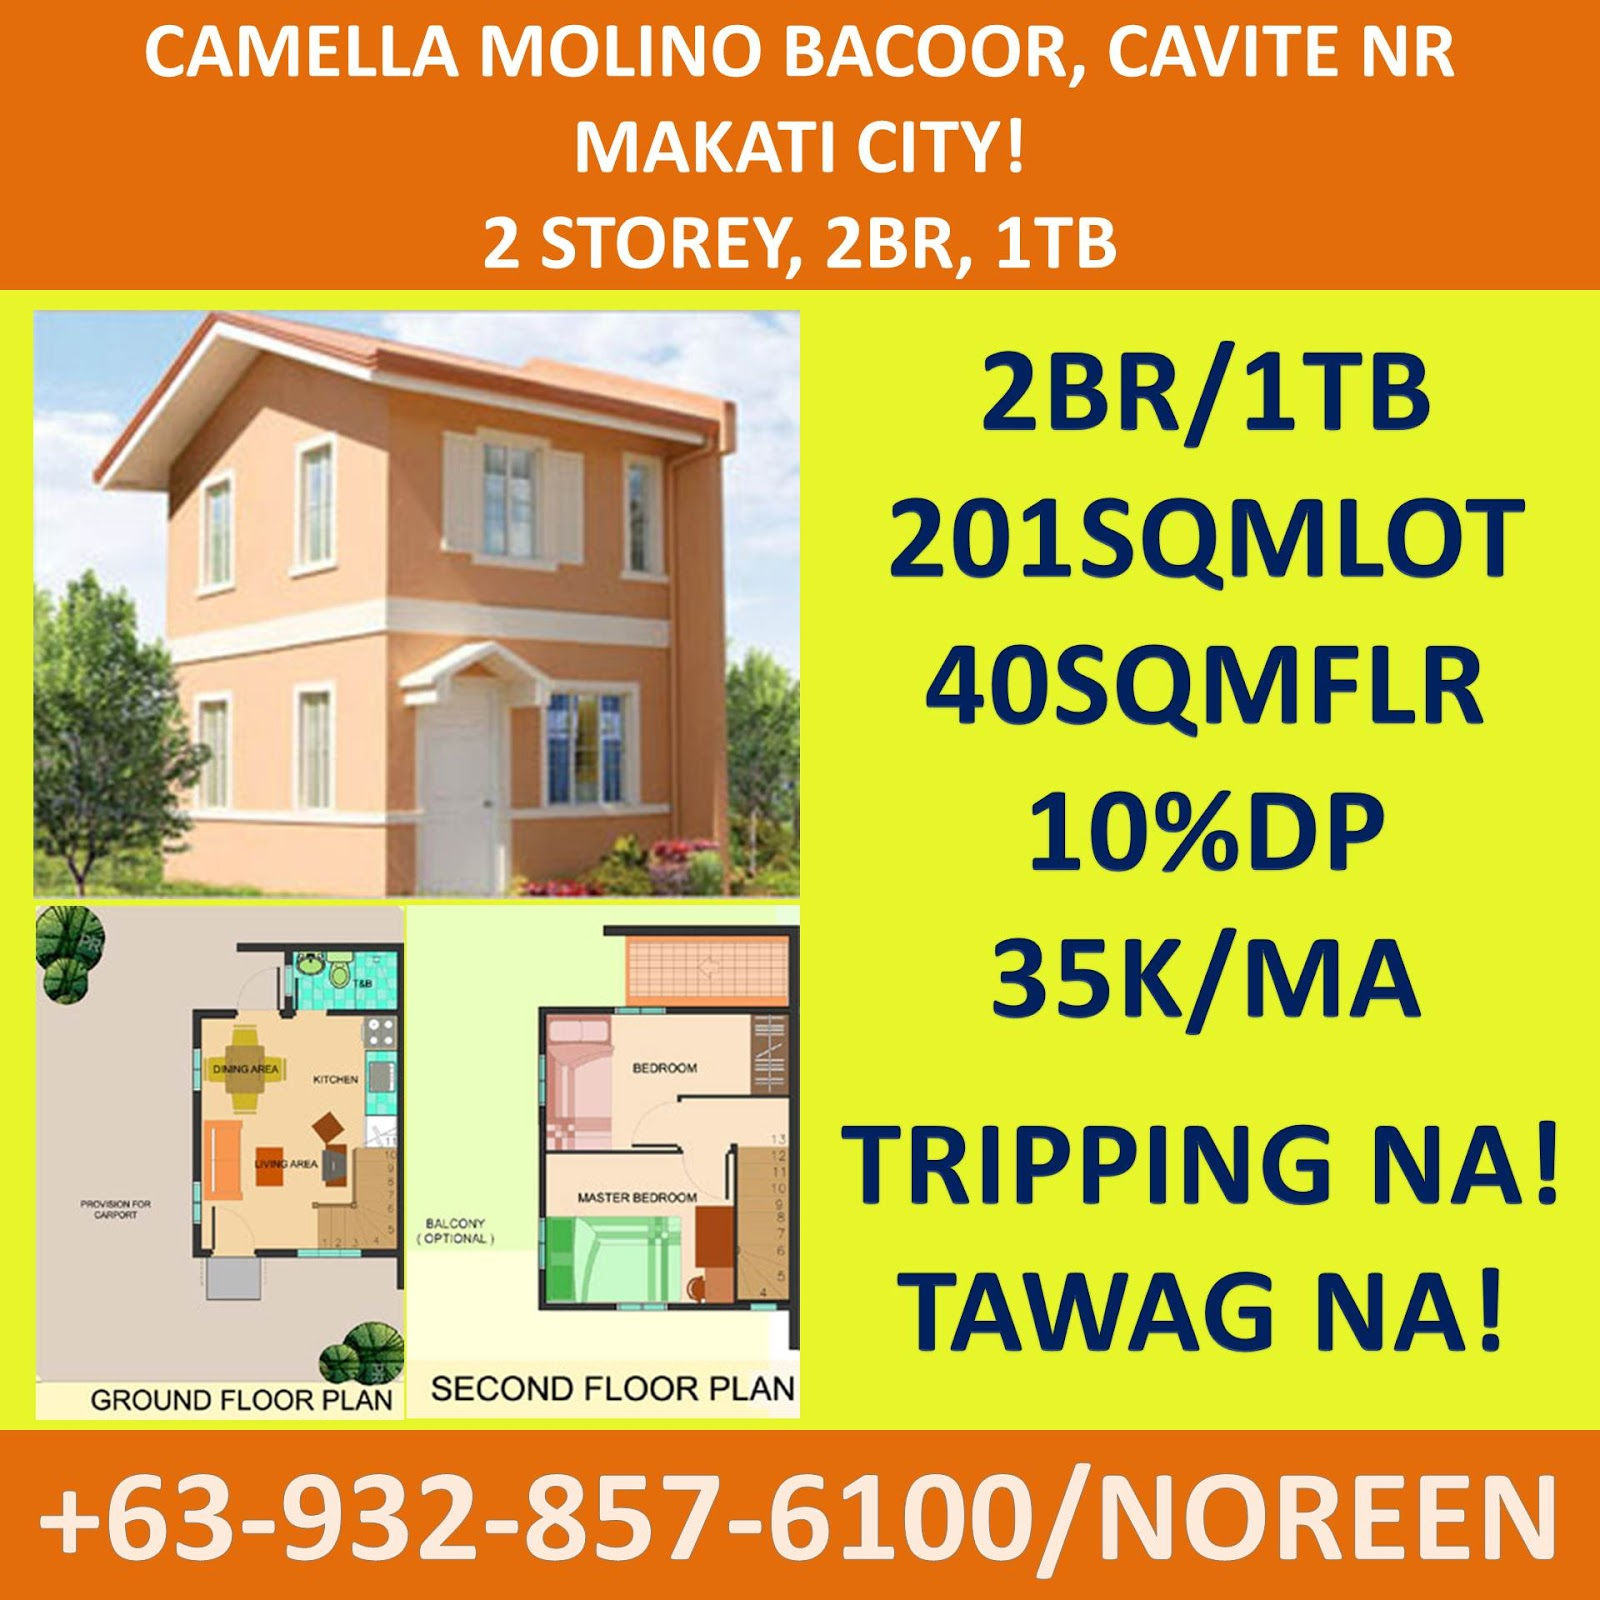 Home Of Your Rent To Own Information Center In The Philippines Camella Molino Bacoor Near